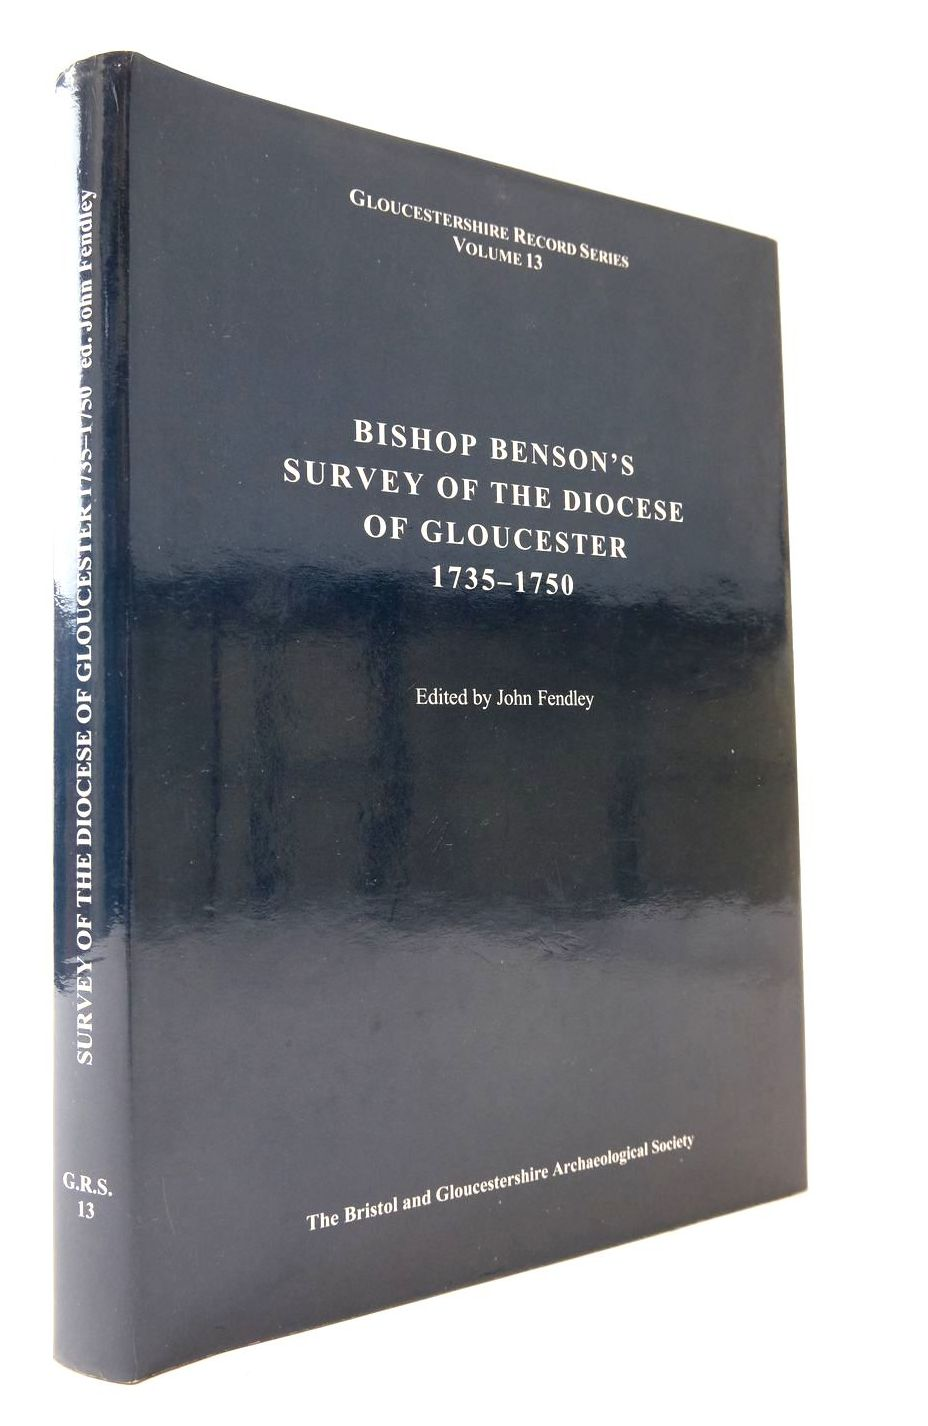 Photo of BISHOP BENSON'S SURVEY OF THE DIOCESE OF GLOUCESTER 1735-1750- Stock Number: 2133263